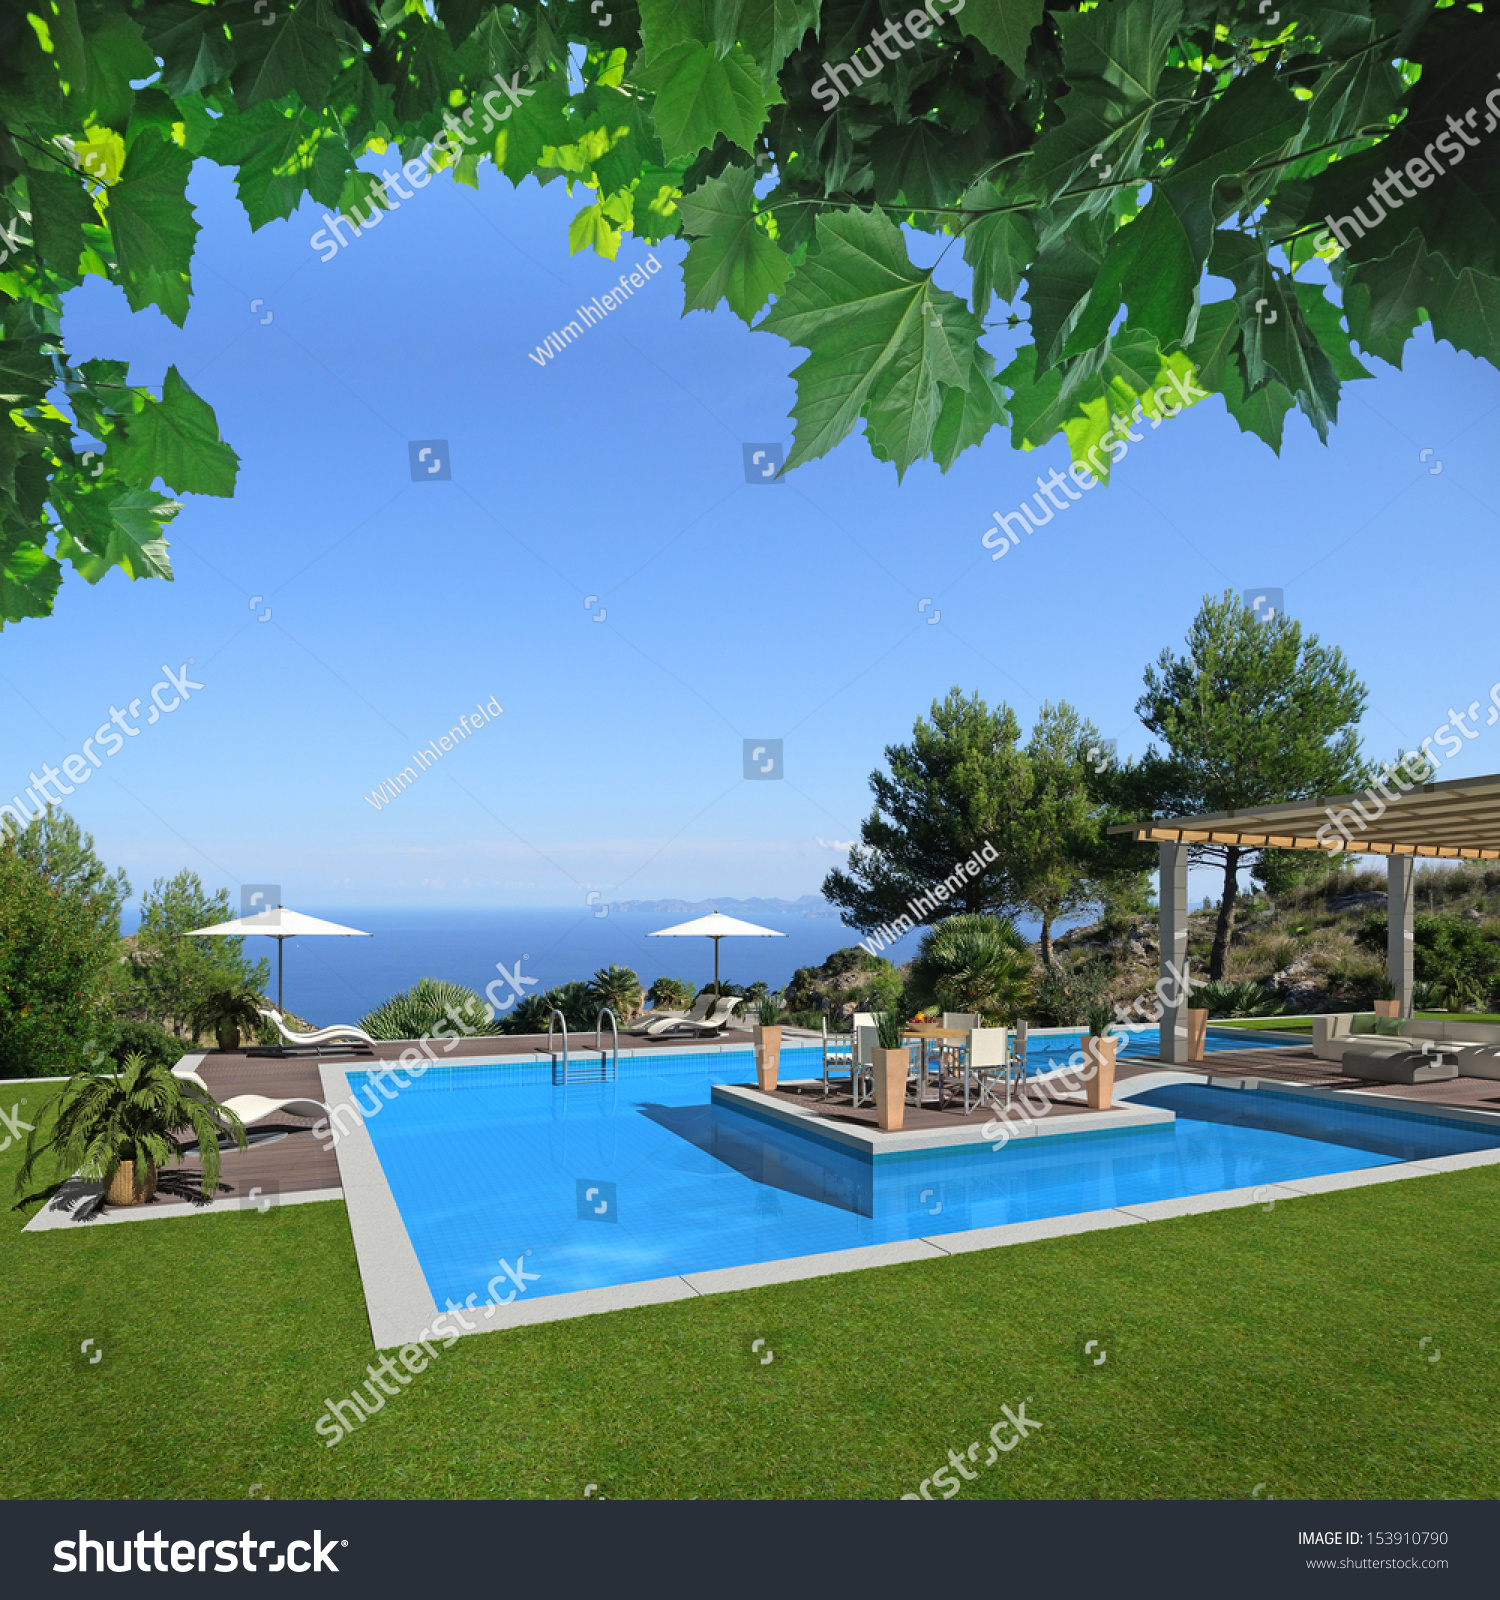 Fictitious swimming pool scenery with a beautiful view to the sea 3d